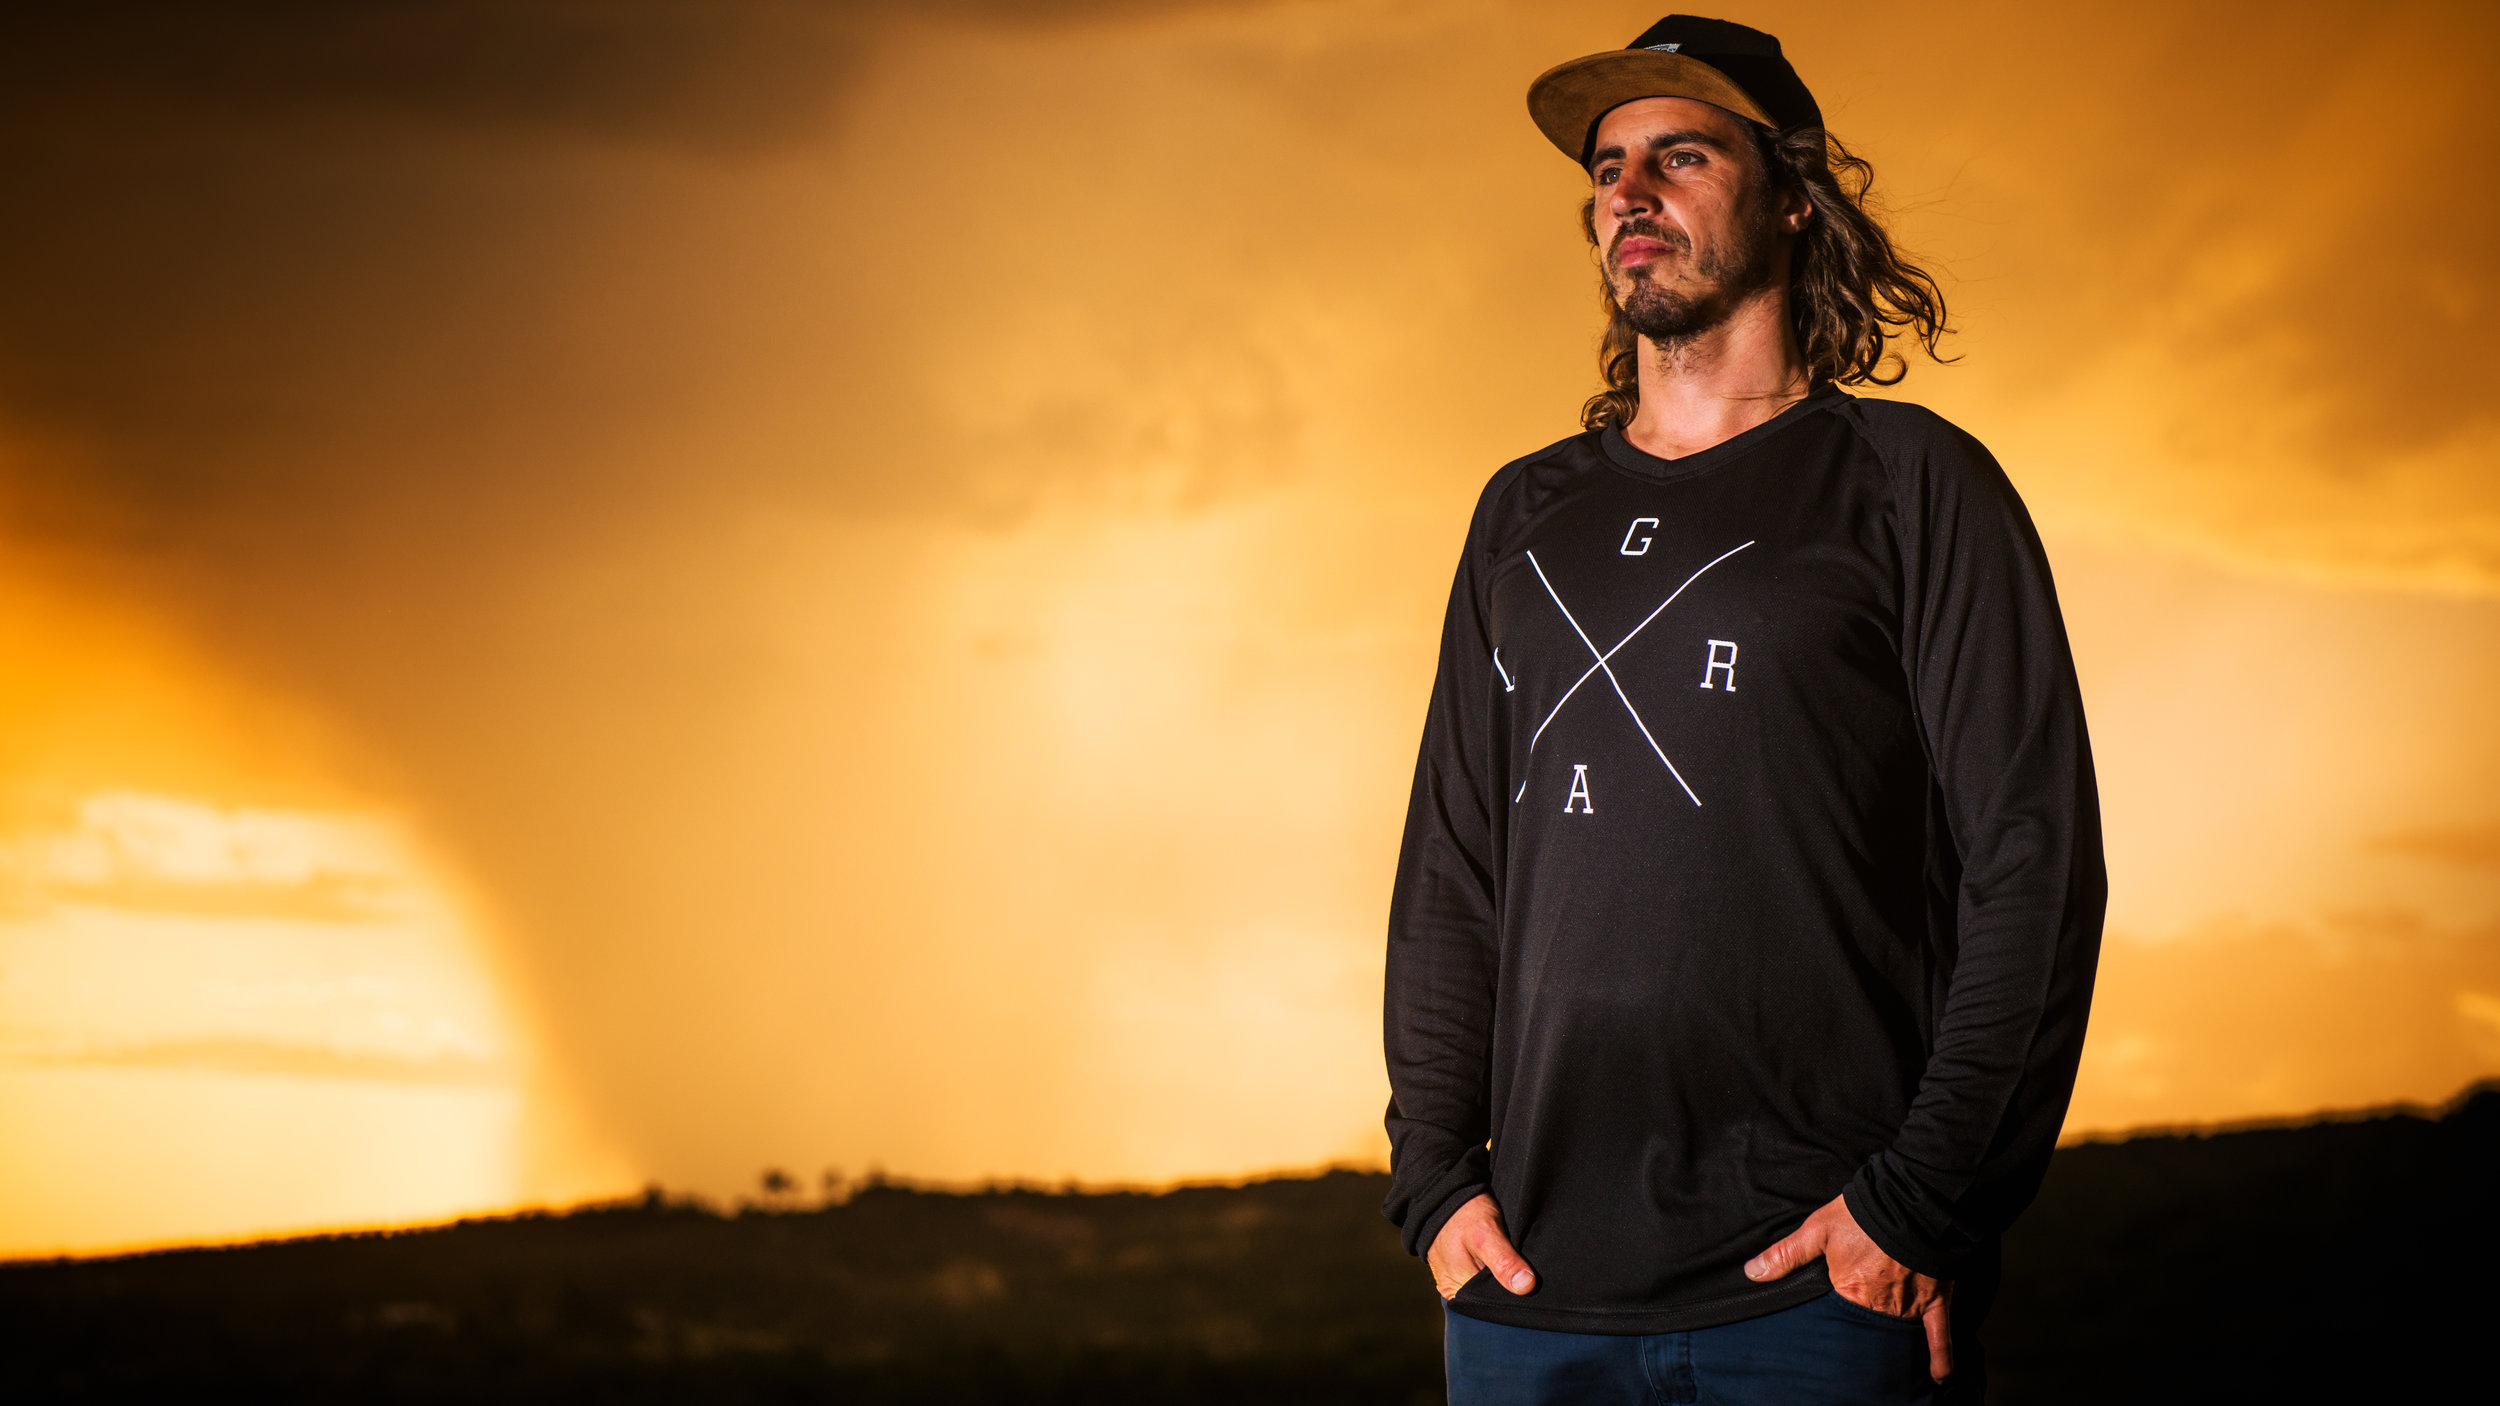 Nico Vink - LOOSE FEST / ROYAL FESTRetiring from world cup downhill in 2012 Nico has since become one of the biggest icons of freeride mountainbiking. Having competed 4 times in Red Bull Rampage he's now on the judges panel. He has built some of the world most renowned lines.